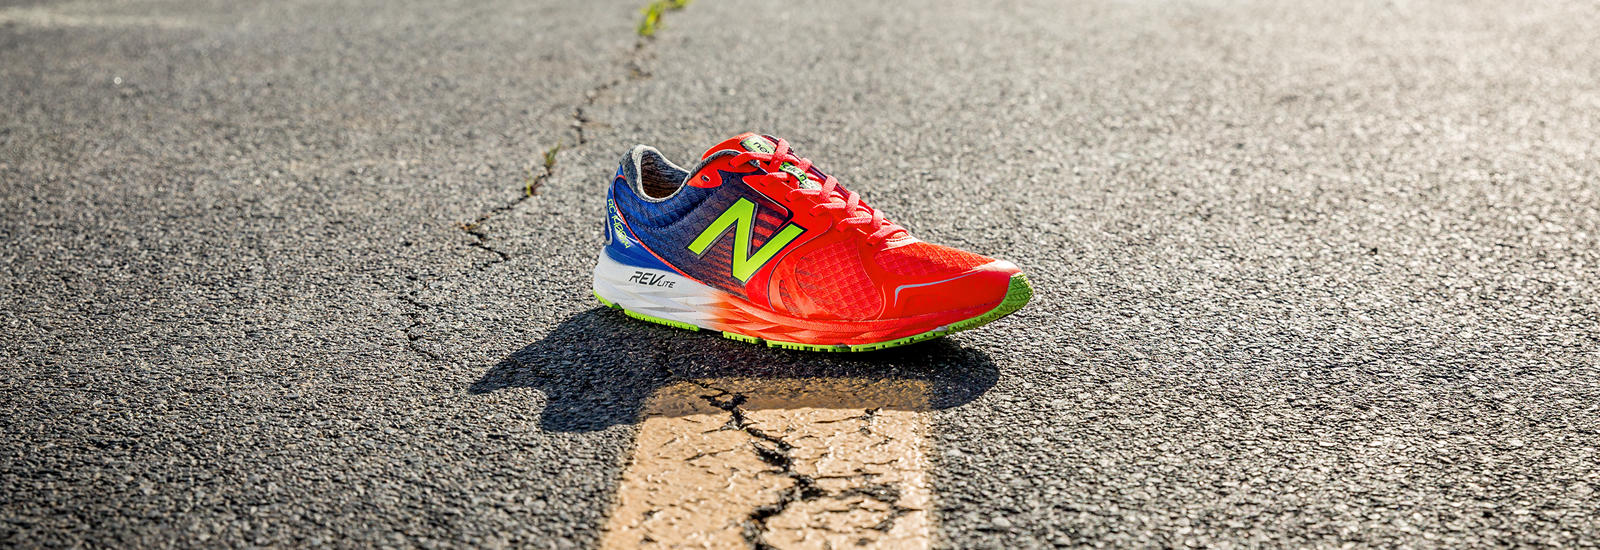 new balance 1400 weight distribution